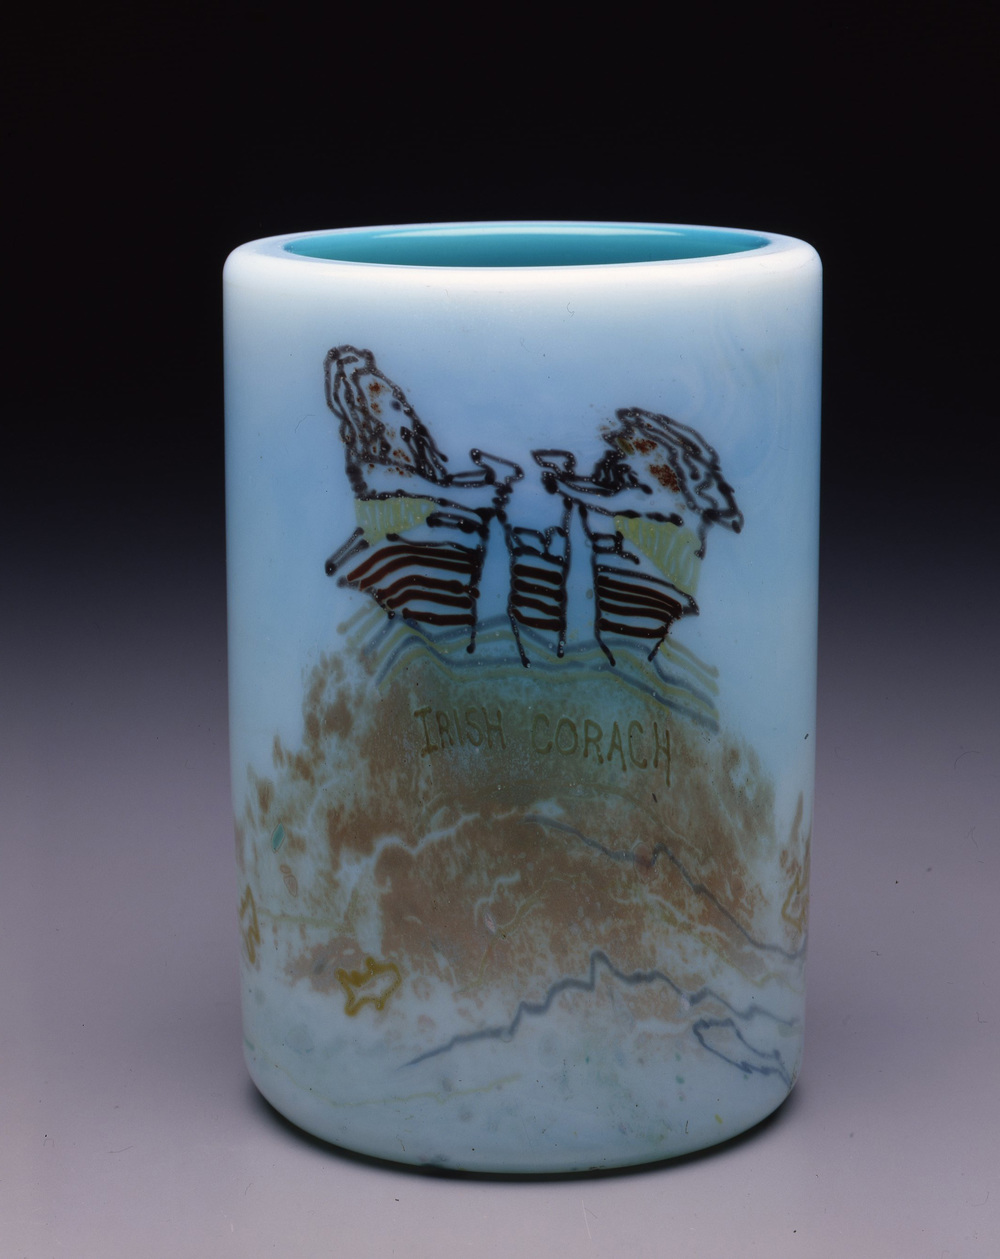 Dale Chihuly,  Irish Cylinder #10   (1975, glass, 8 1/2 x 5 1/2 inches), DC.272